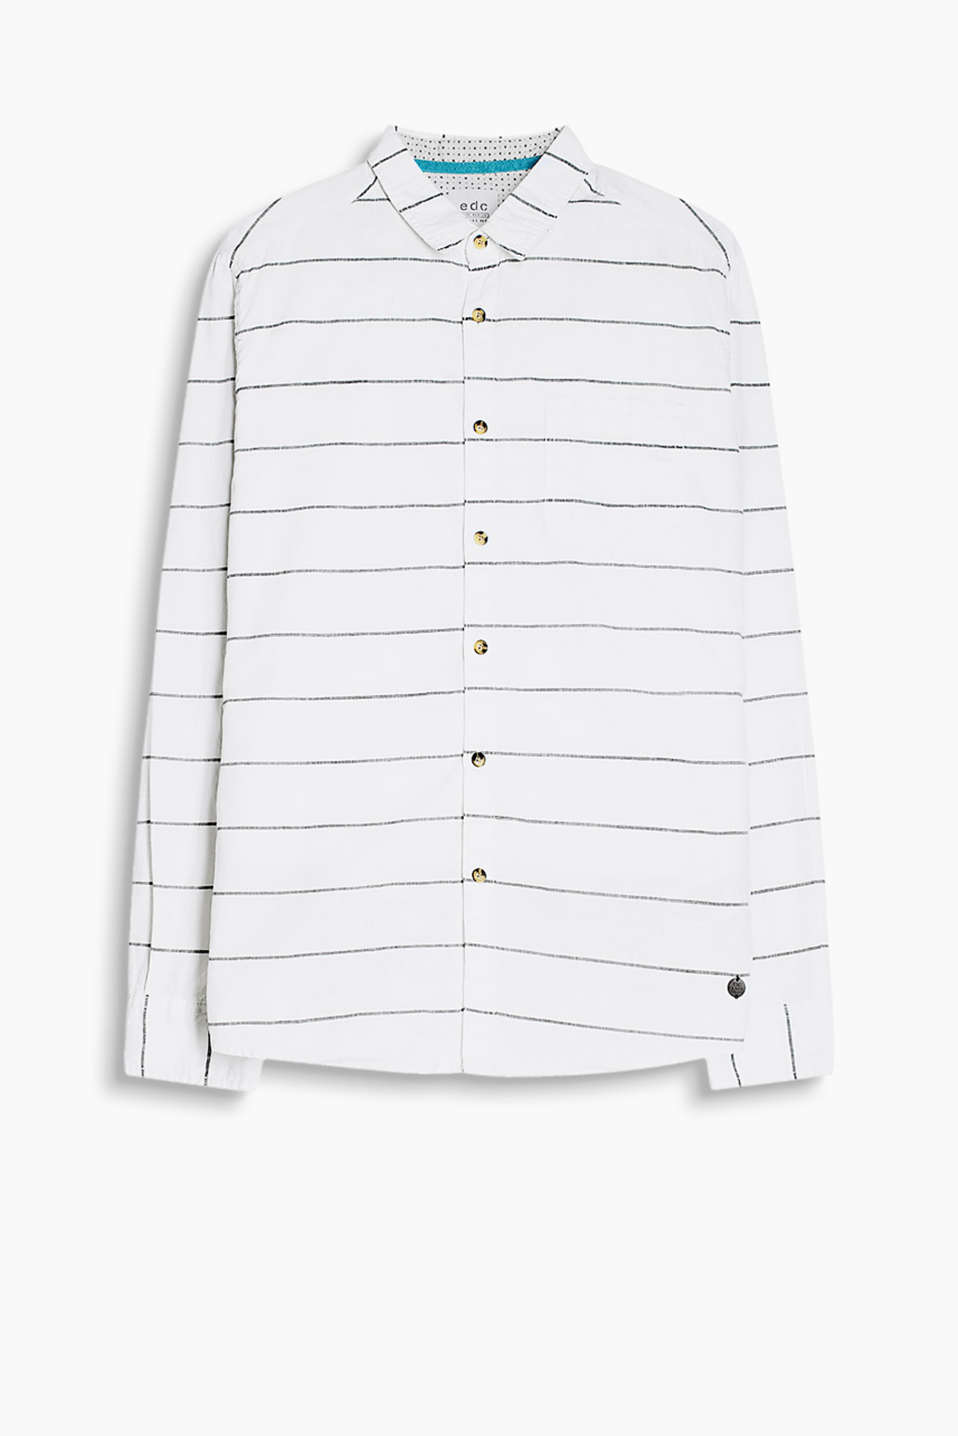 With a nautical striped pattern: shirt with a breast pocket made of cotton chambray